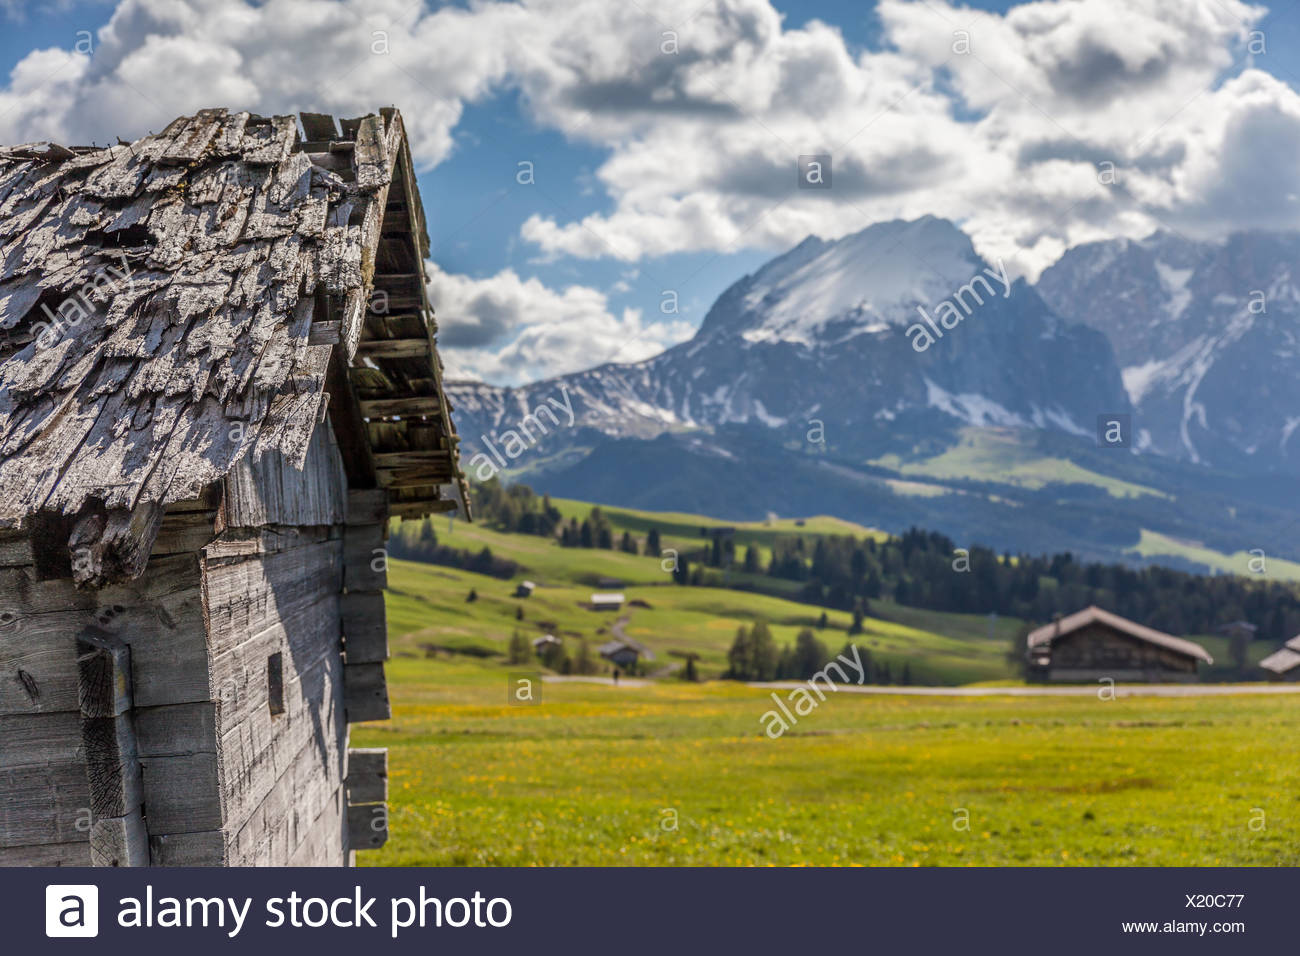 geography / travel, Italy, South Tyrol, Alpine hut on the Seiser mountain pasture, view to the Plattkofel, Additional-Rights-Clearance-Info-Not-Available - Stock Image